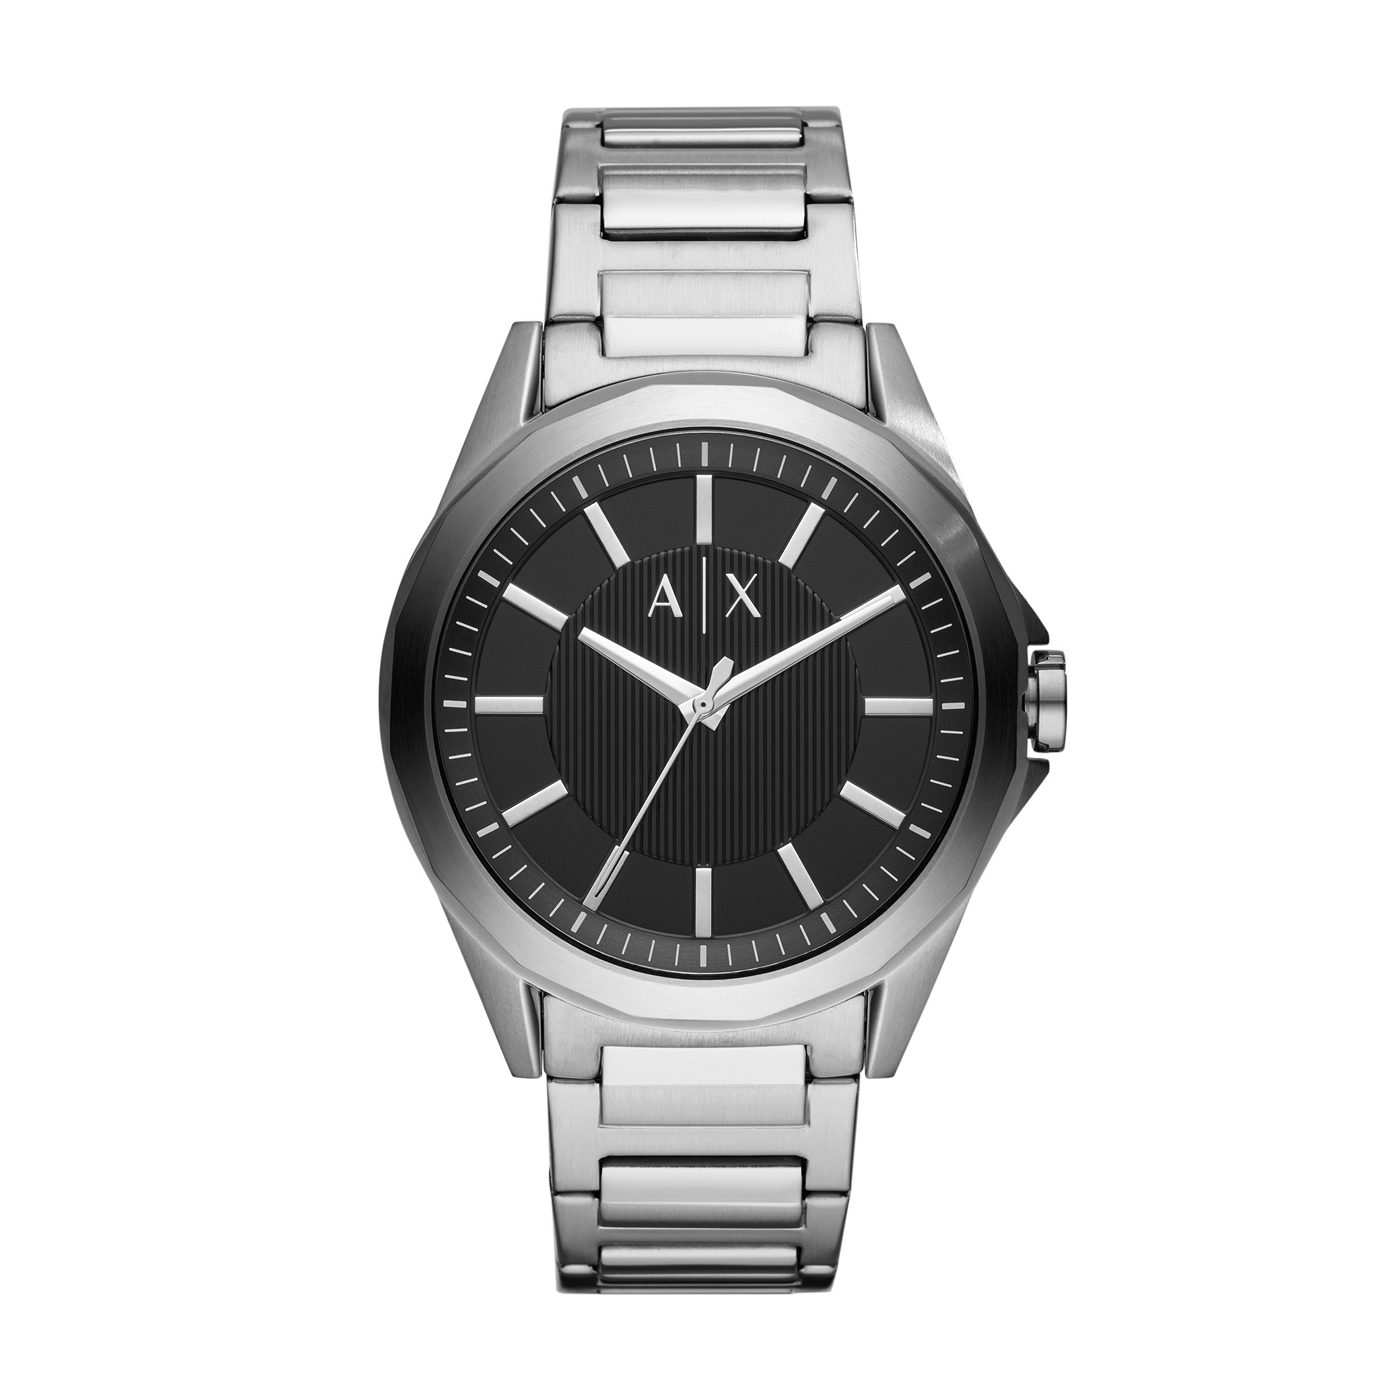 Bilde av Armani Exchange Drexler Watch AX2618